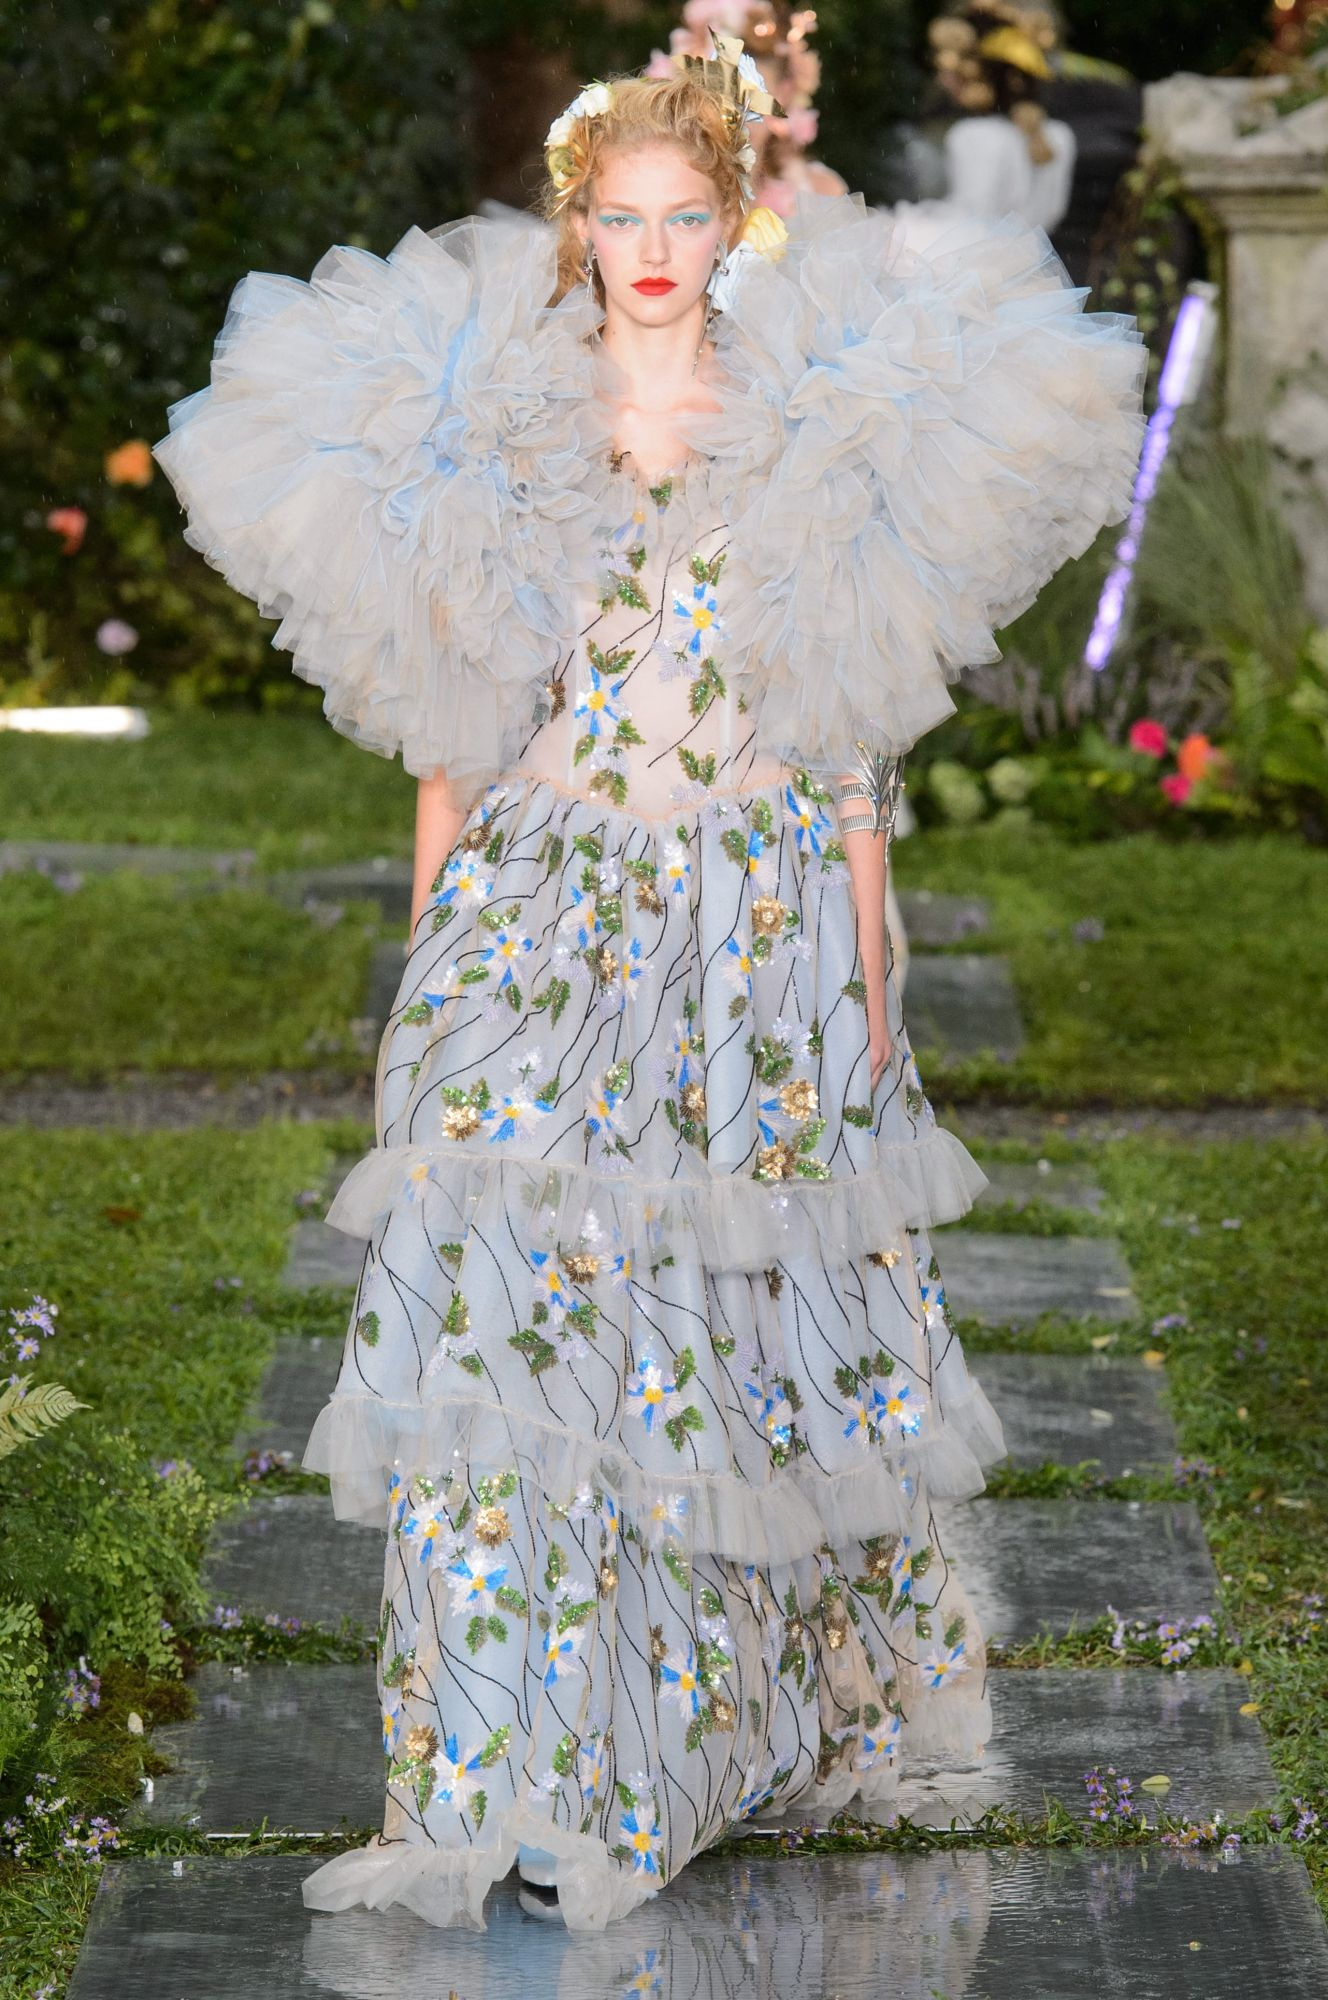 Hand-beaded blue-and-gold floral gown with tulle ruffle details by Rodarte